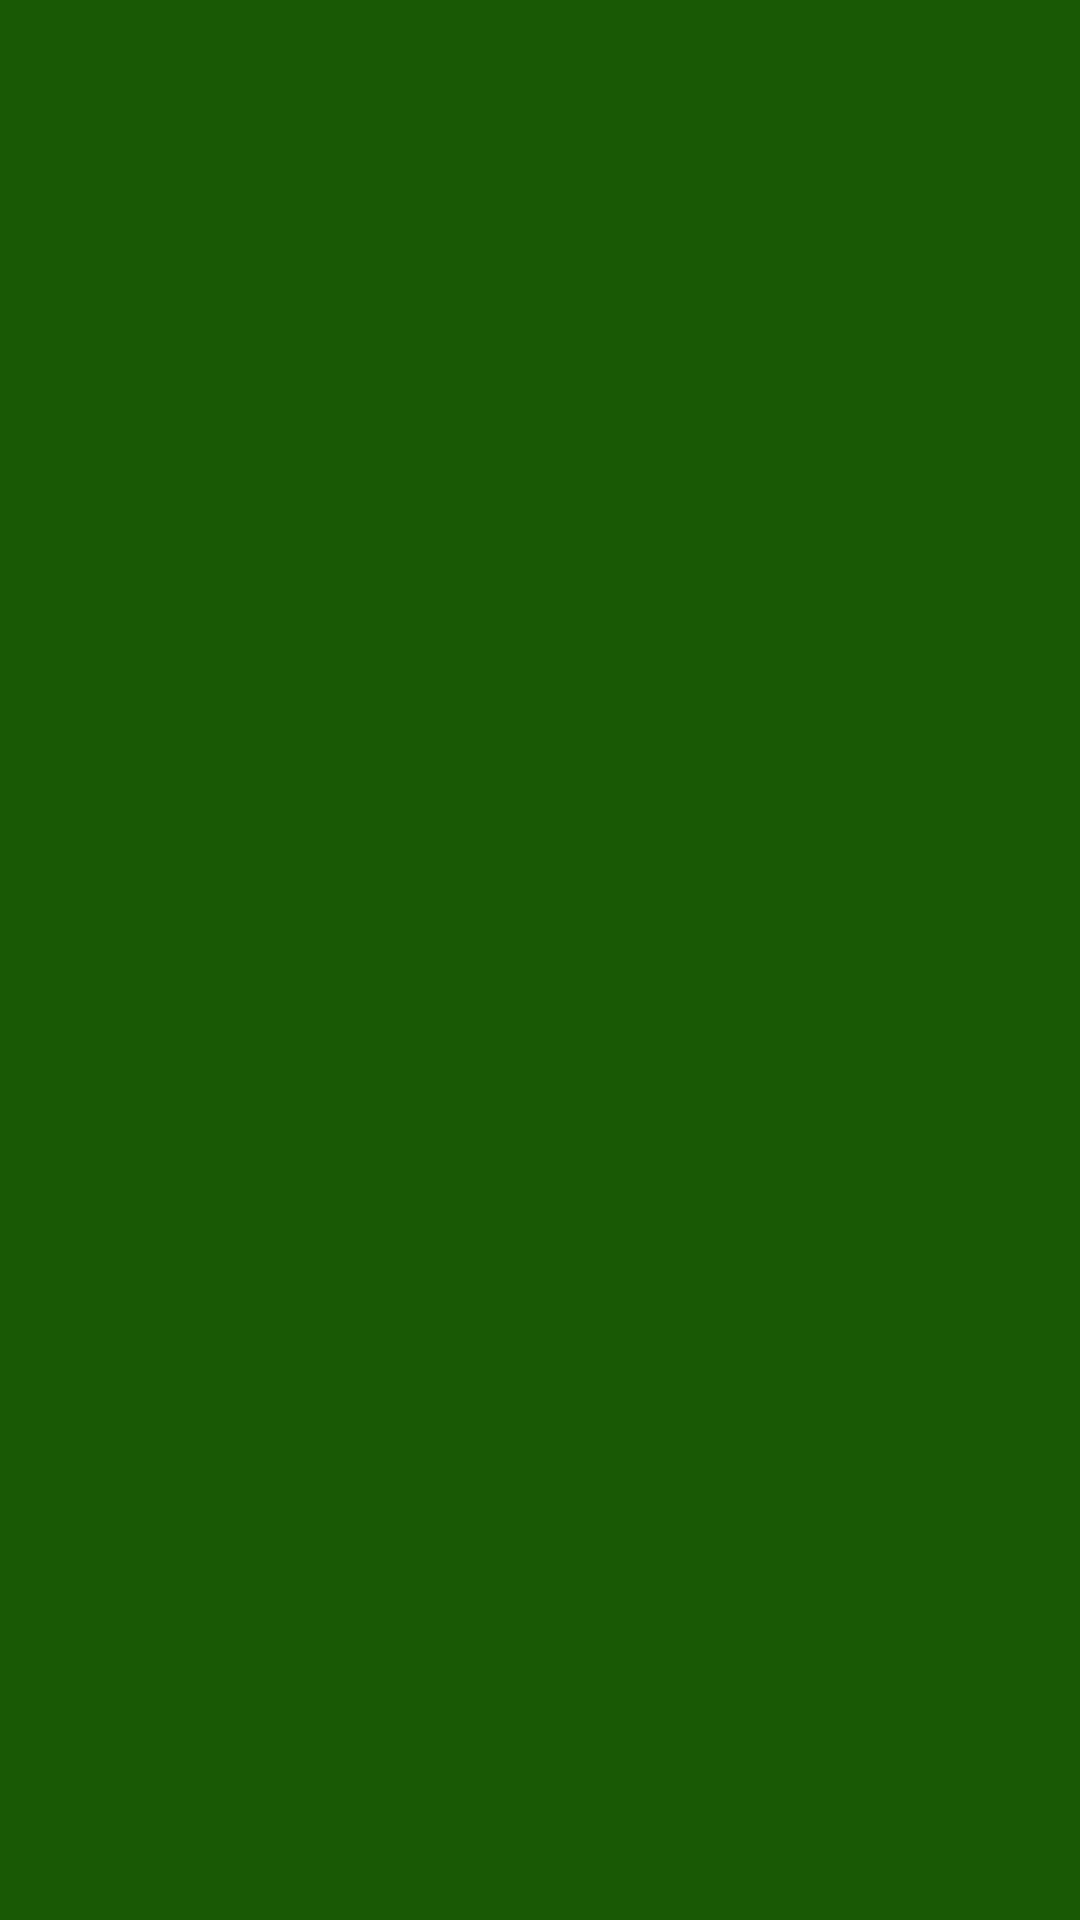 1080x1920 Lincoln Green Solid Color Background